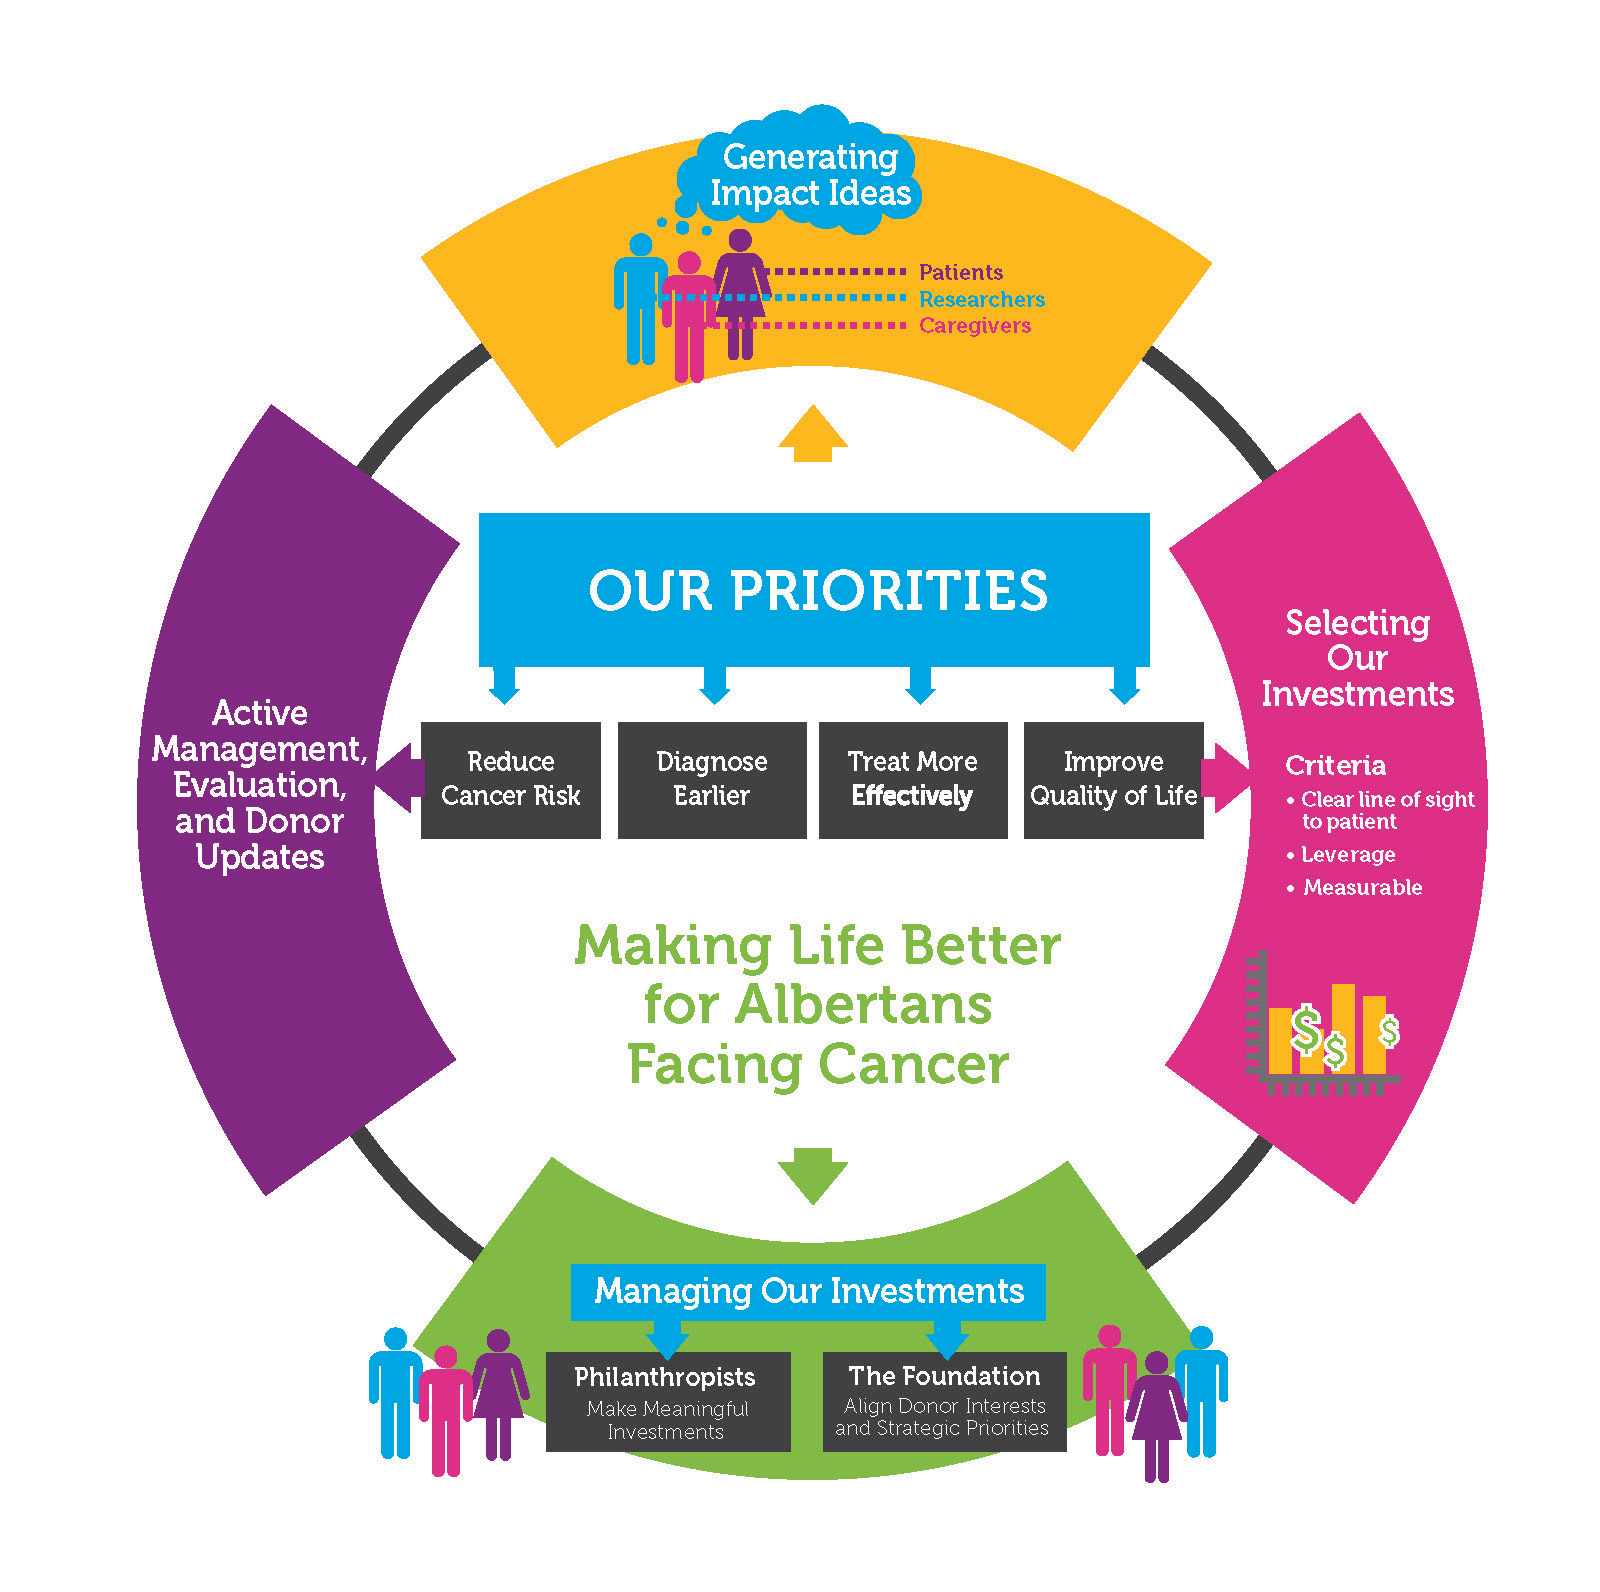 Alberta Cancer Foundation Strategy - Our Priorities Chart